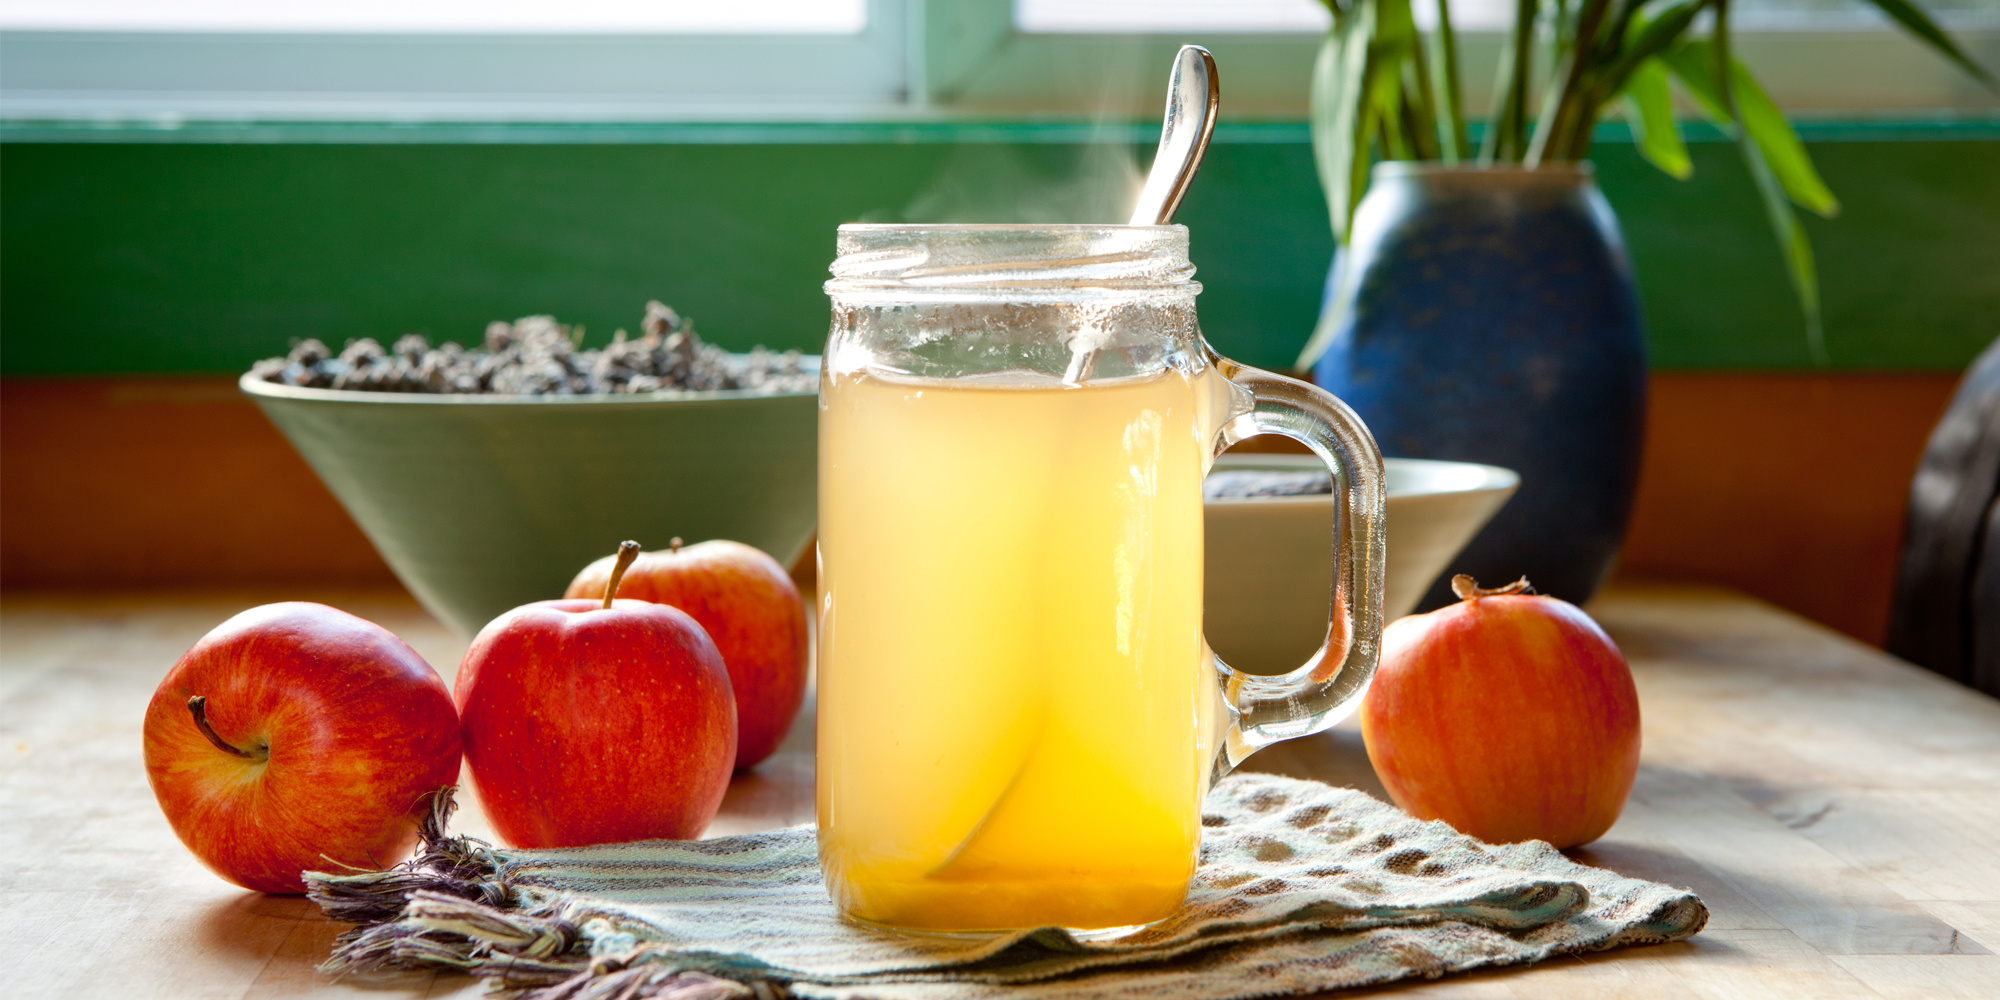 Can the Apple Cider Vinegar Diet Help You With Weight Loss?